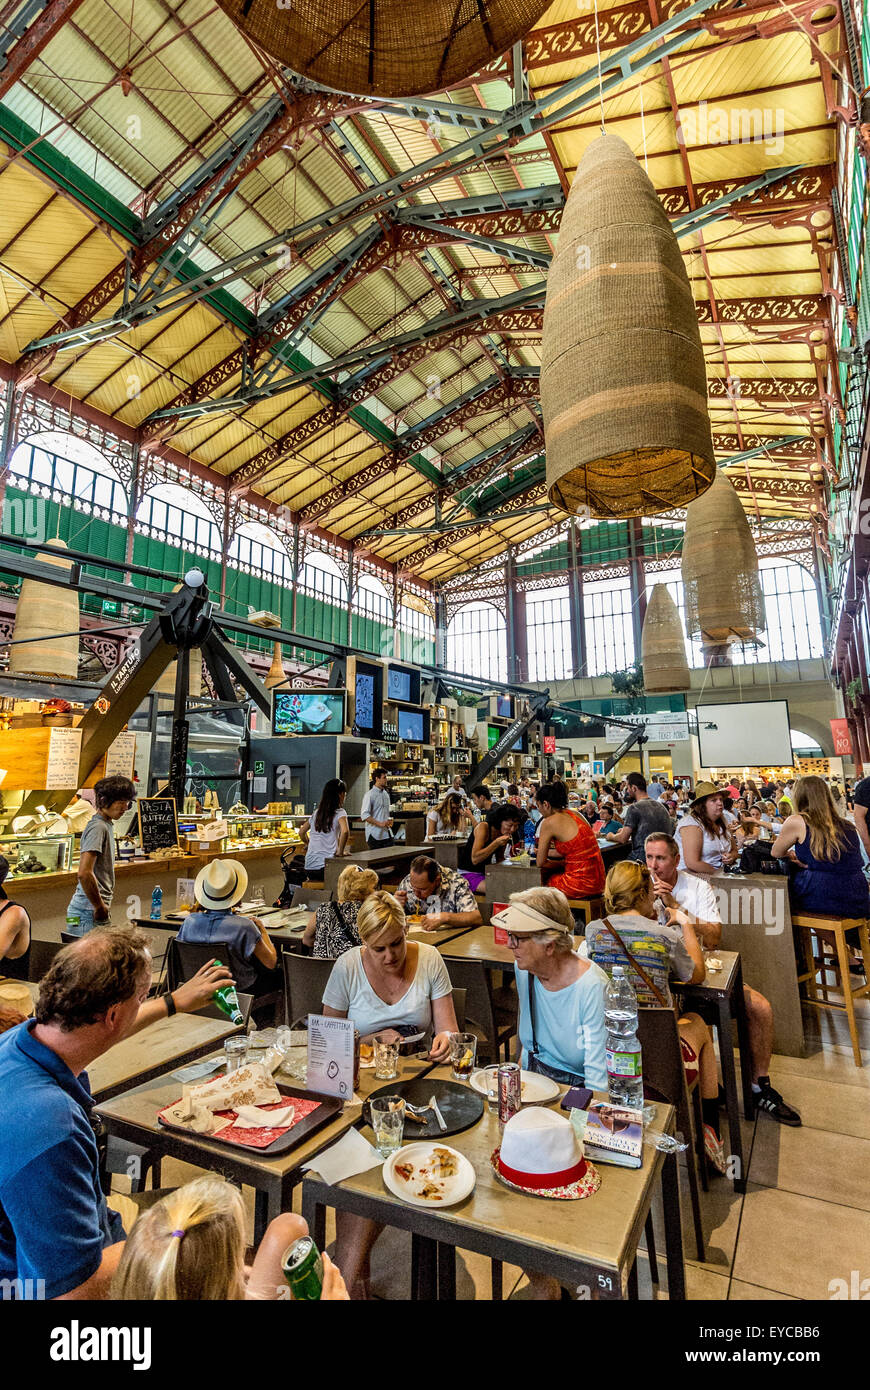 Mercato Centrale Indoor Market Florence Italy Stock